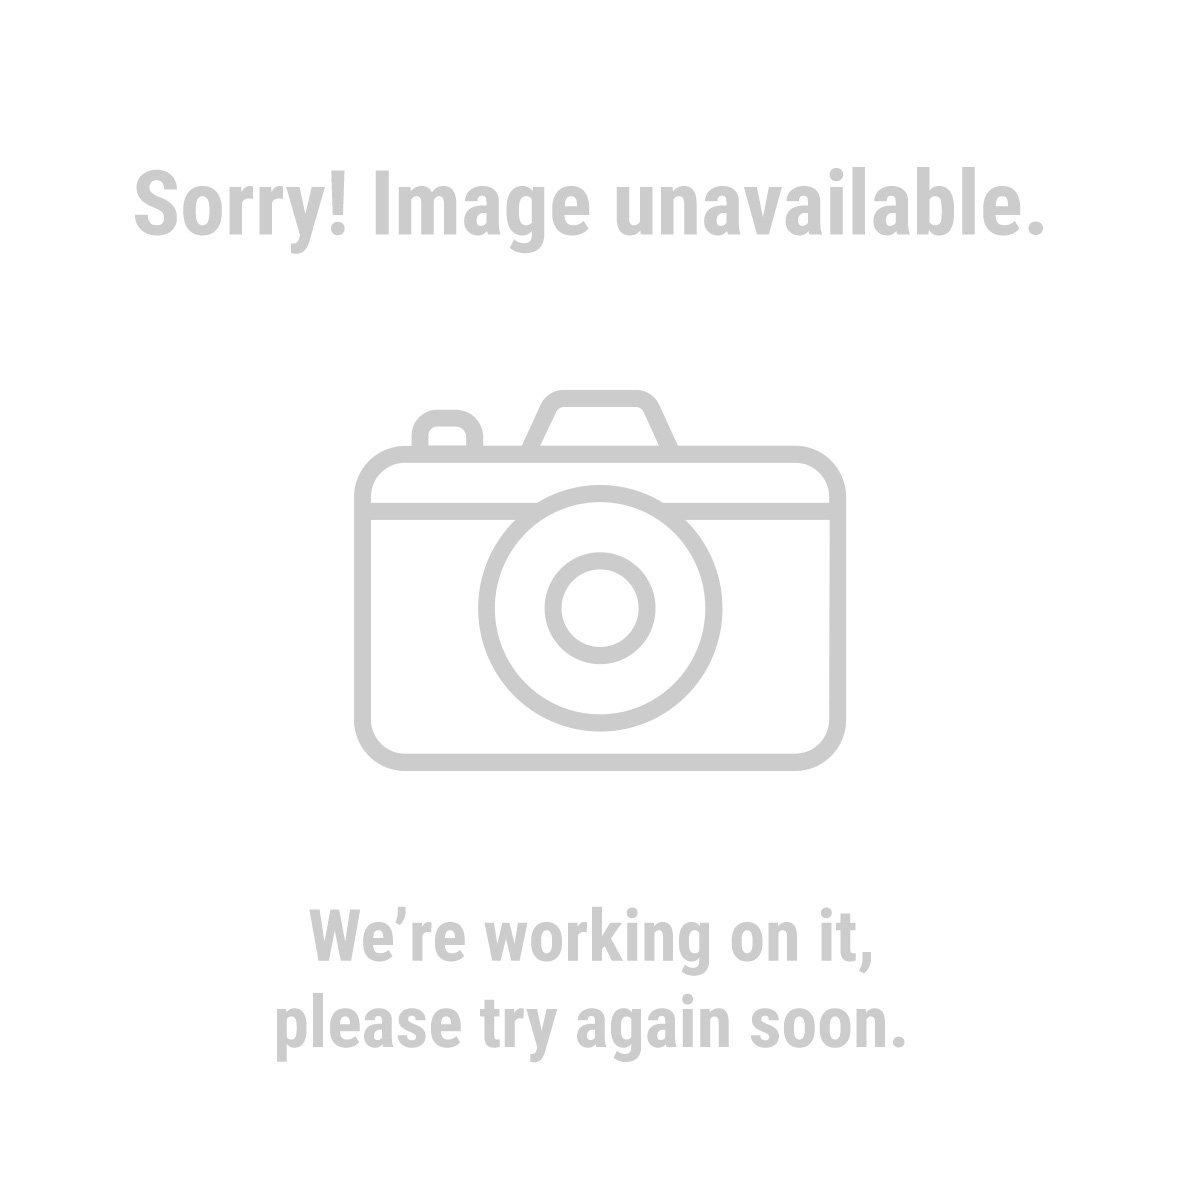 Storehouse® 60255 Assorted Cable Ties 1000 Pc